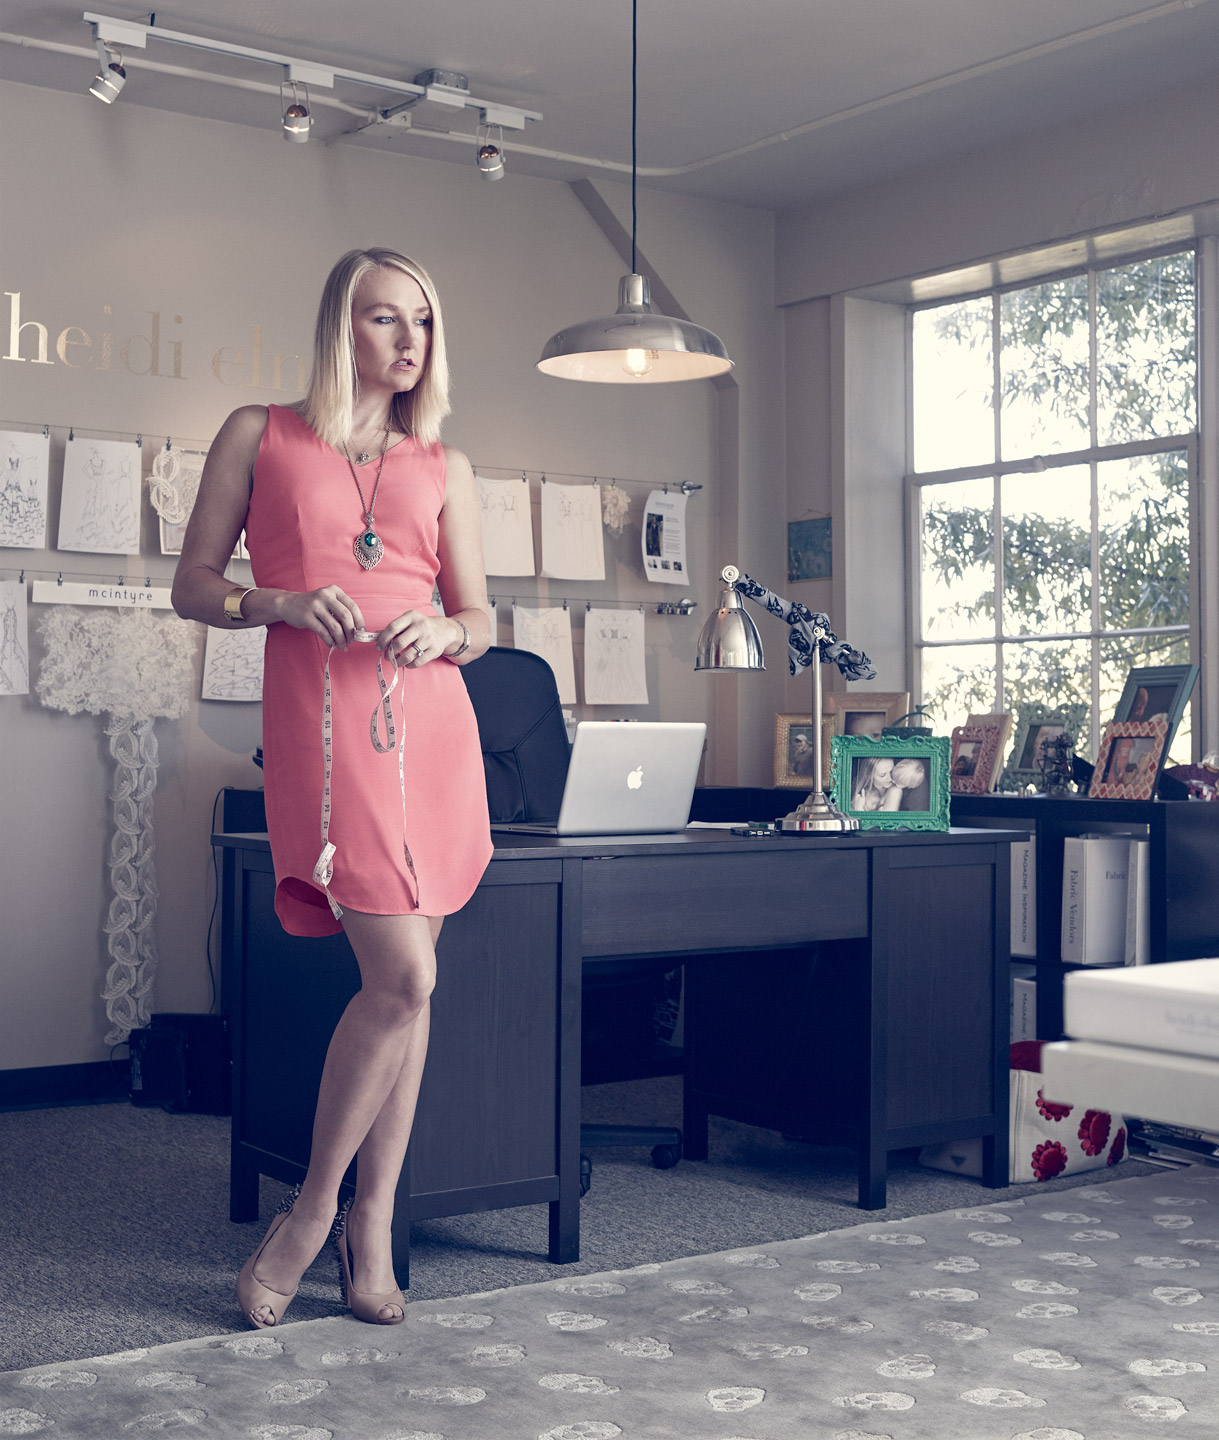 Heidi-Elnora-Office-by-Michael-J-Moore-Photography